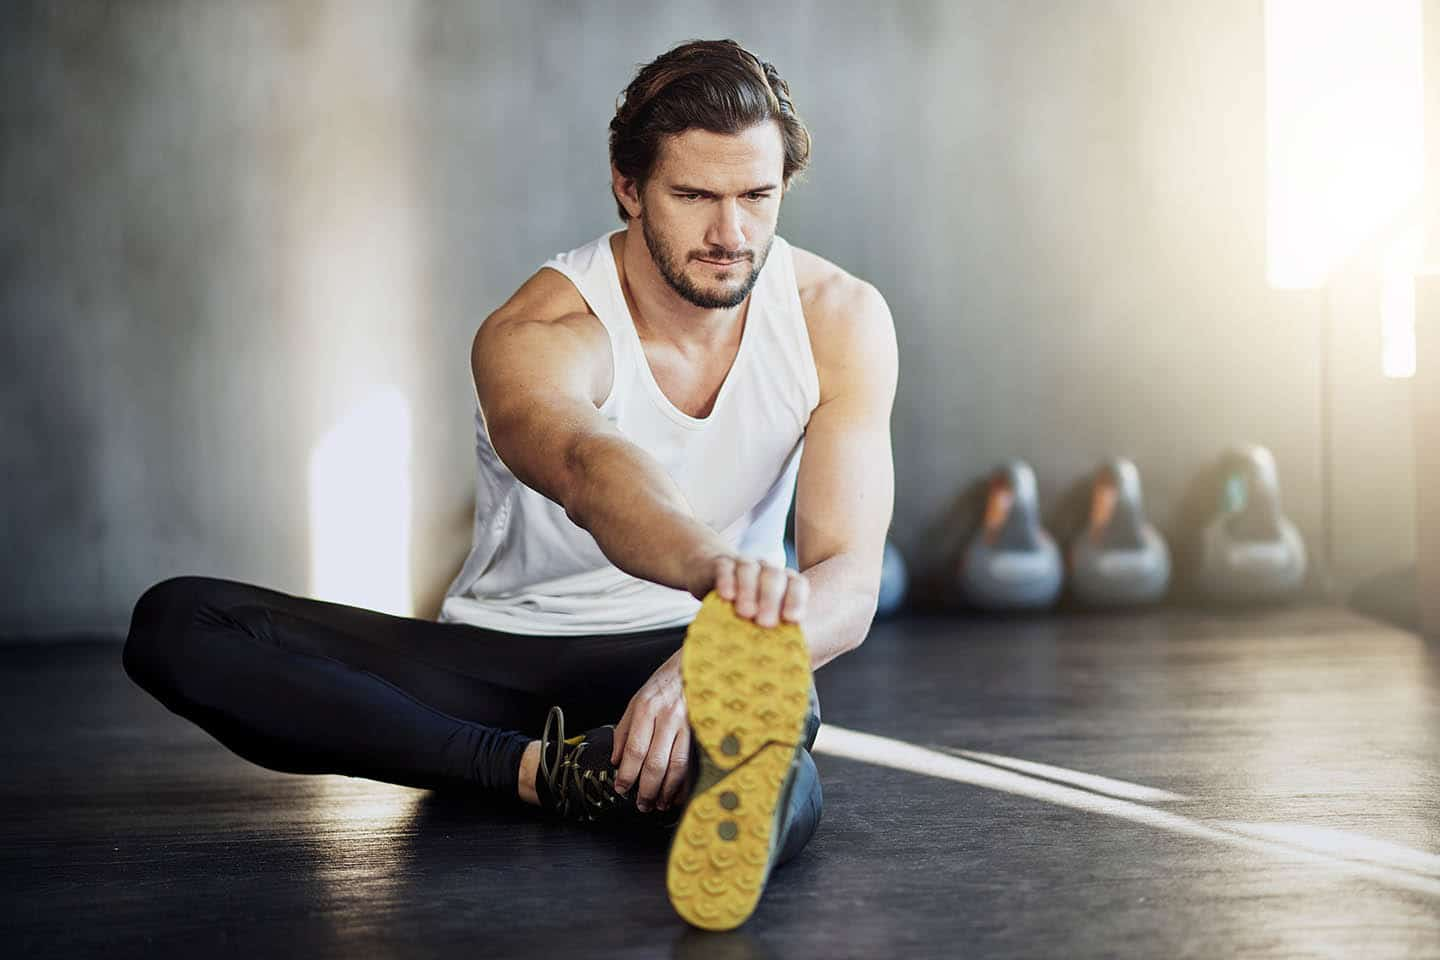 A fit man stretching in the gym